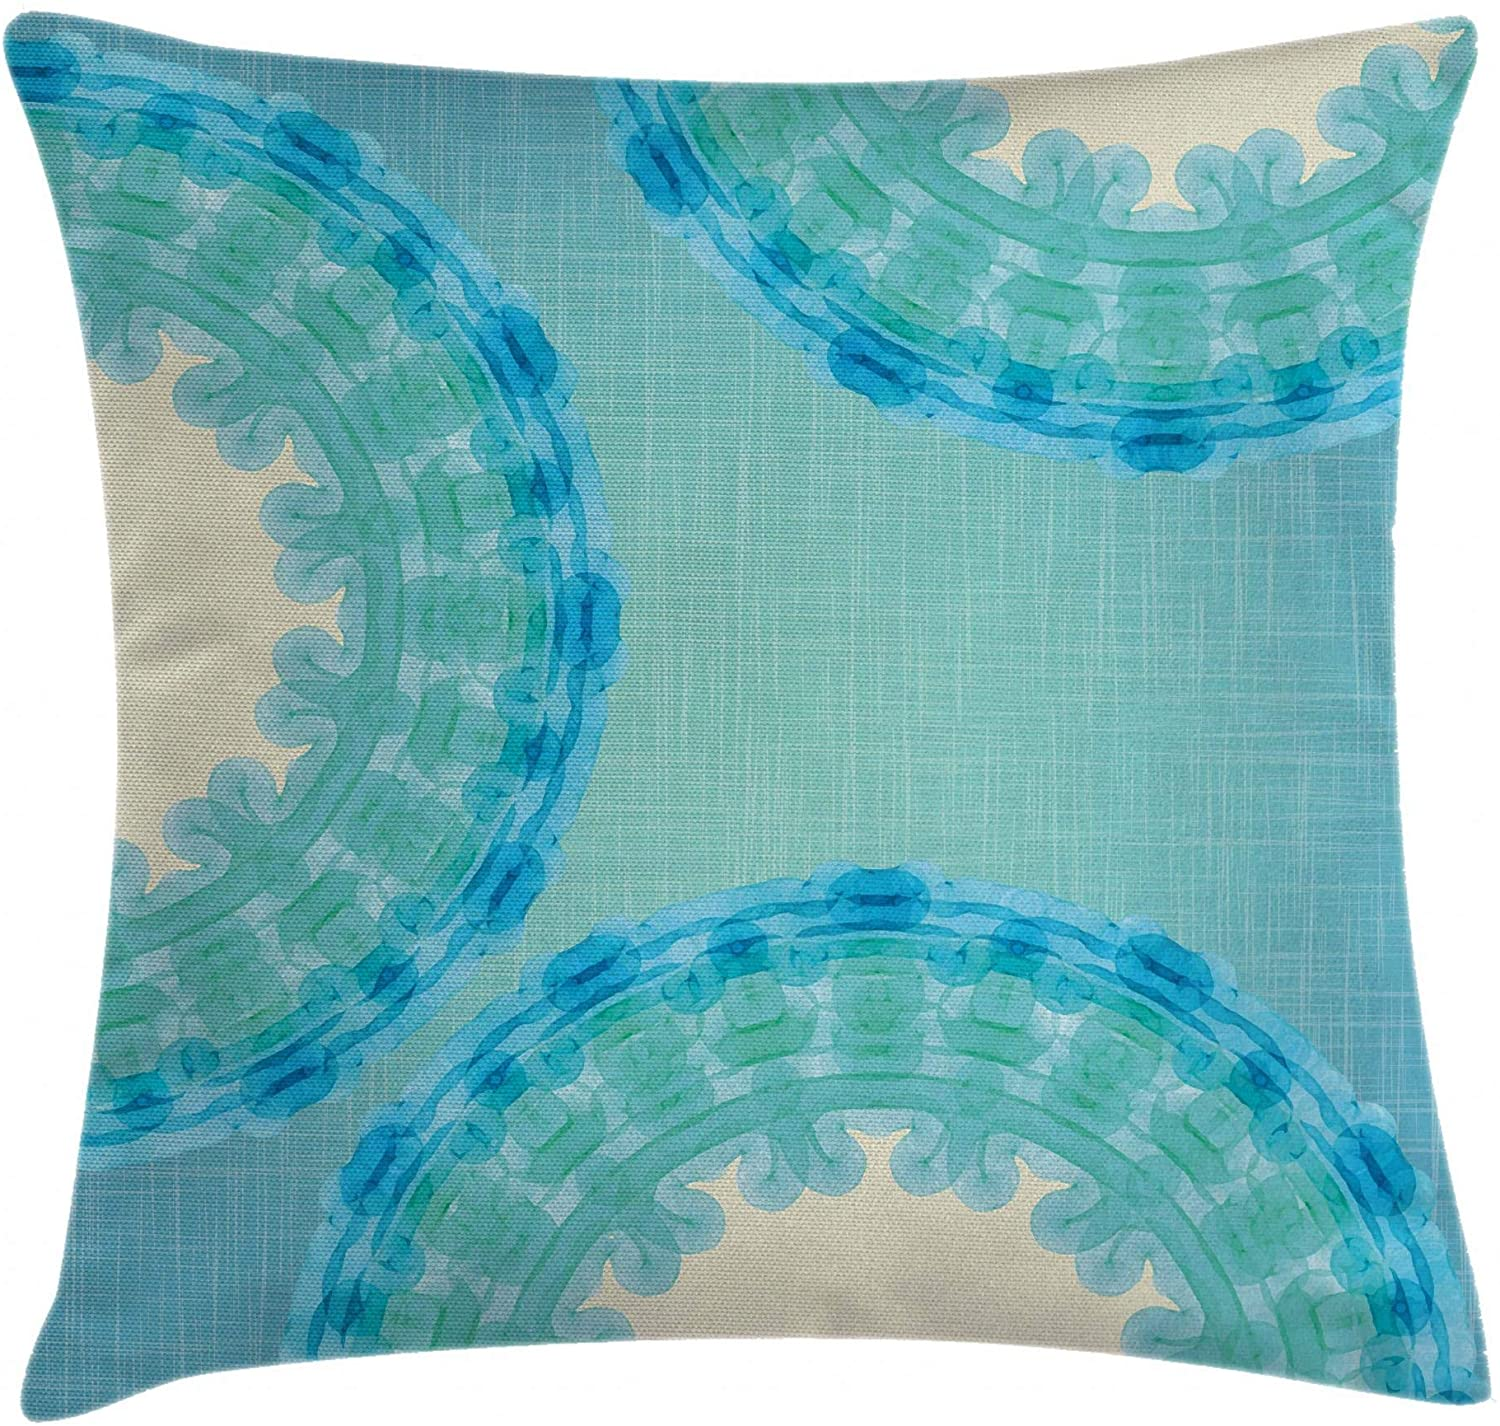 Ambesonne Aqua Throw Pillow Cushion Cover, Tie Dye Effect Image Mandala Ombre with Circles Rounds Ethnic, Decorative Square Accent Pillow Case, 24